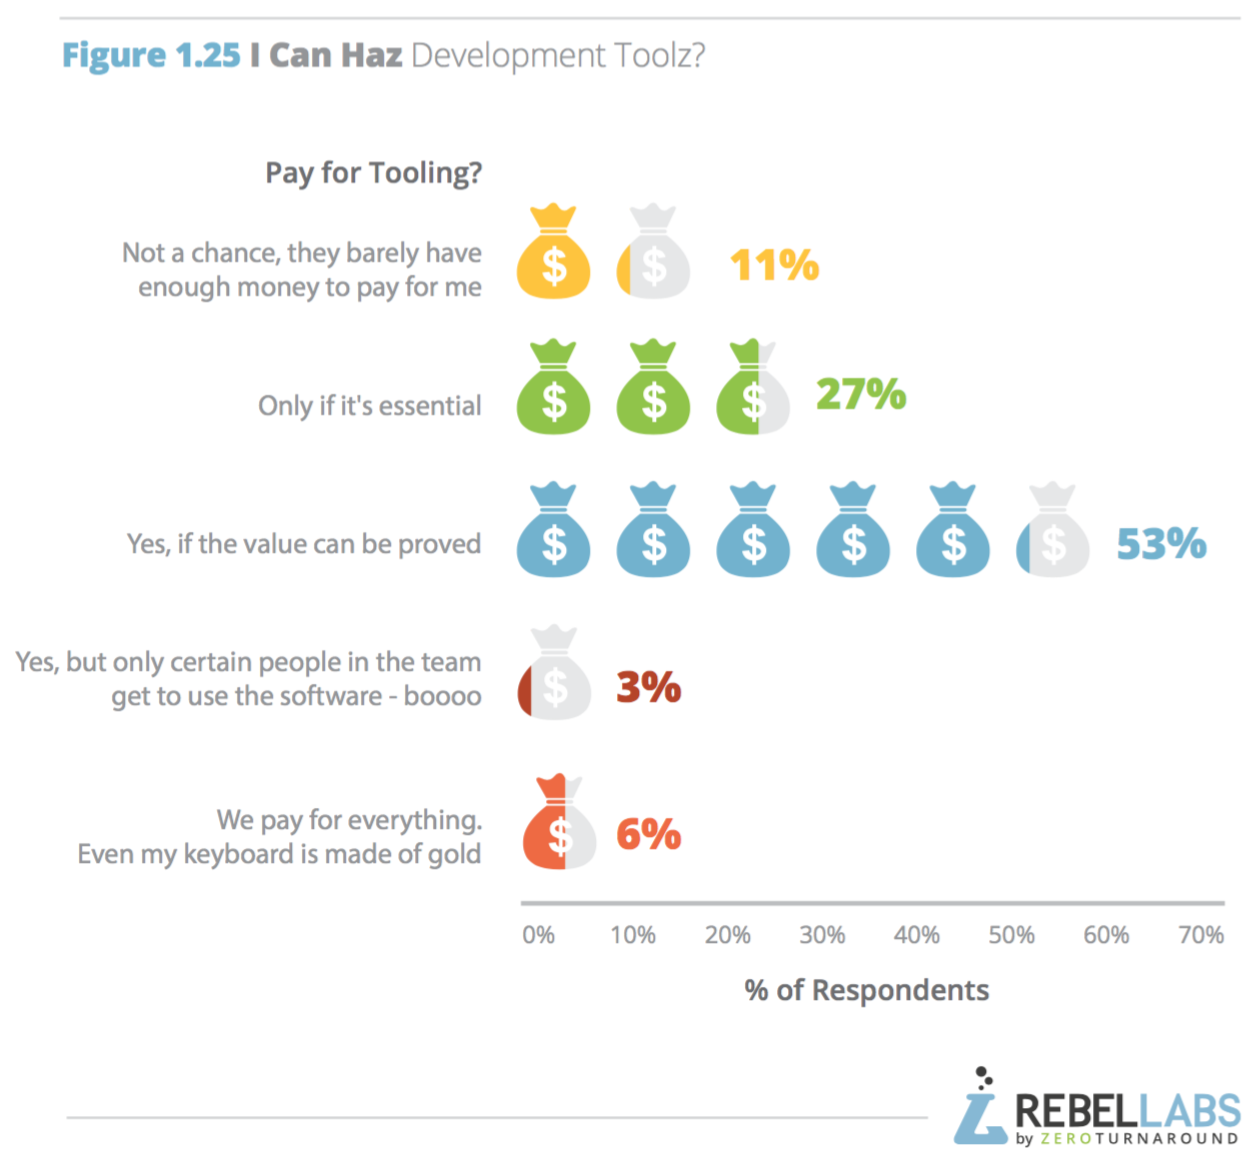 breakdown of respondents/companies likely to pay for development tools